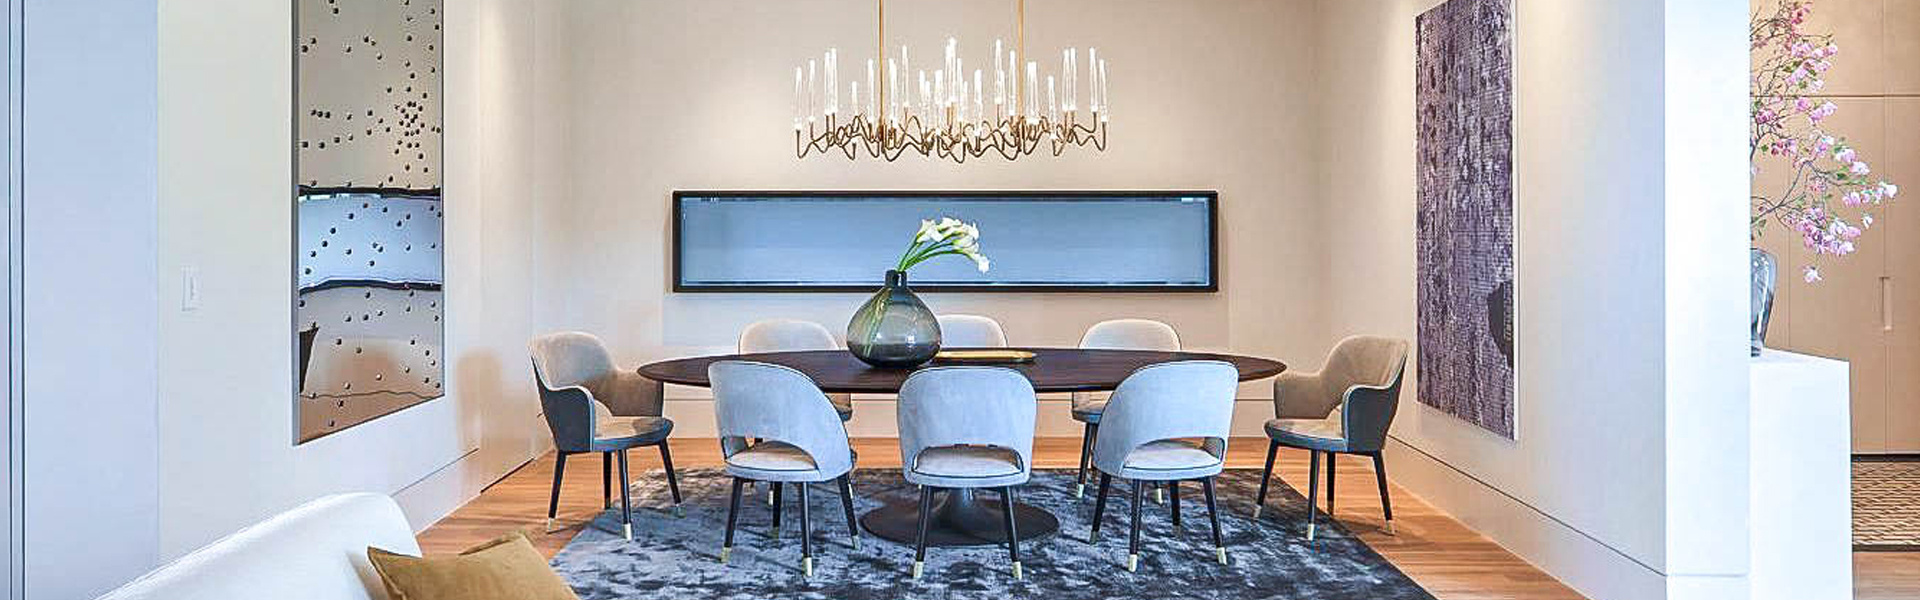 Smart home installation by Audio Visual Design Group for Healdsburg